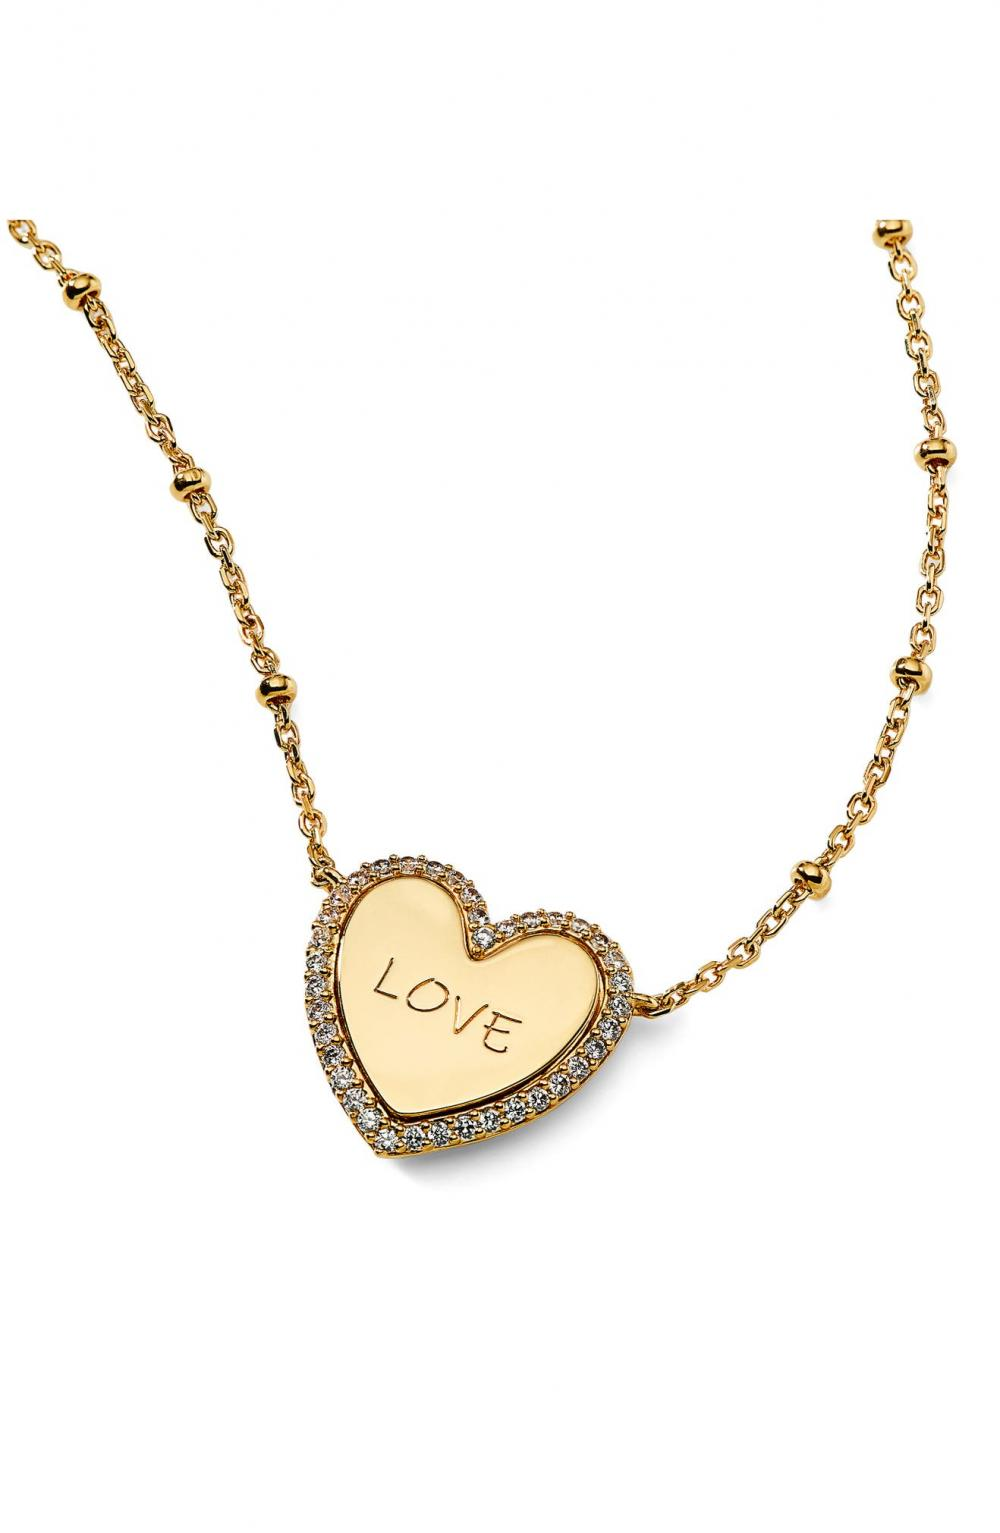 Love Engraved Heart Pendant Necklace